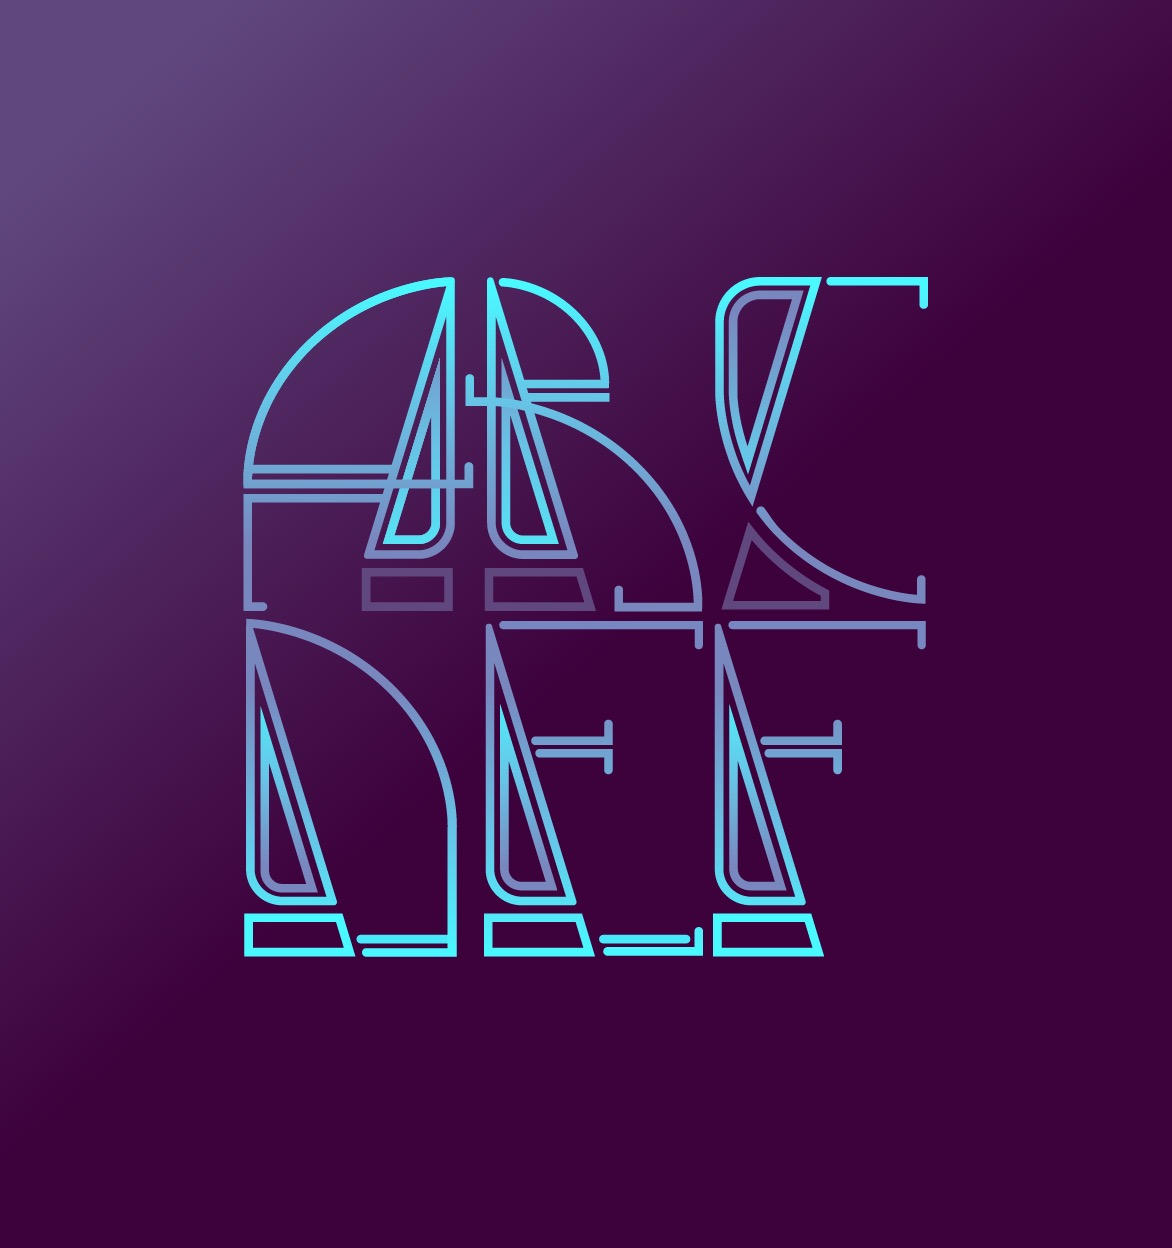 abcdef letter typography designs